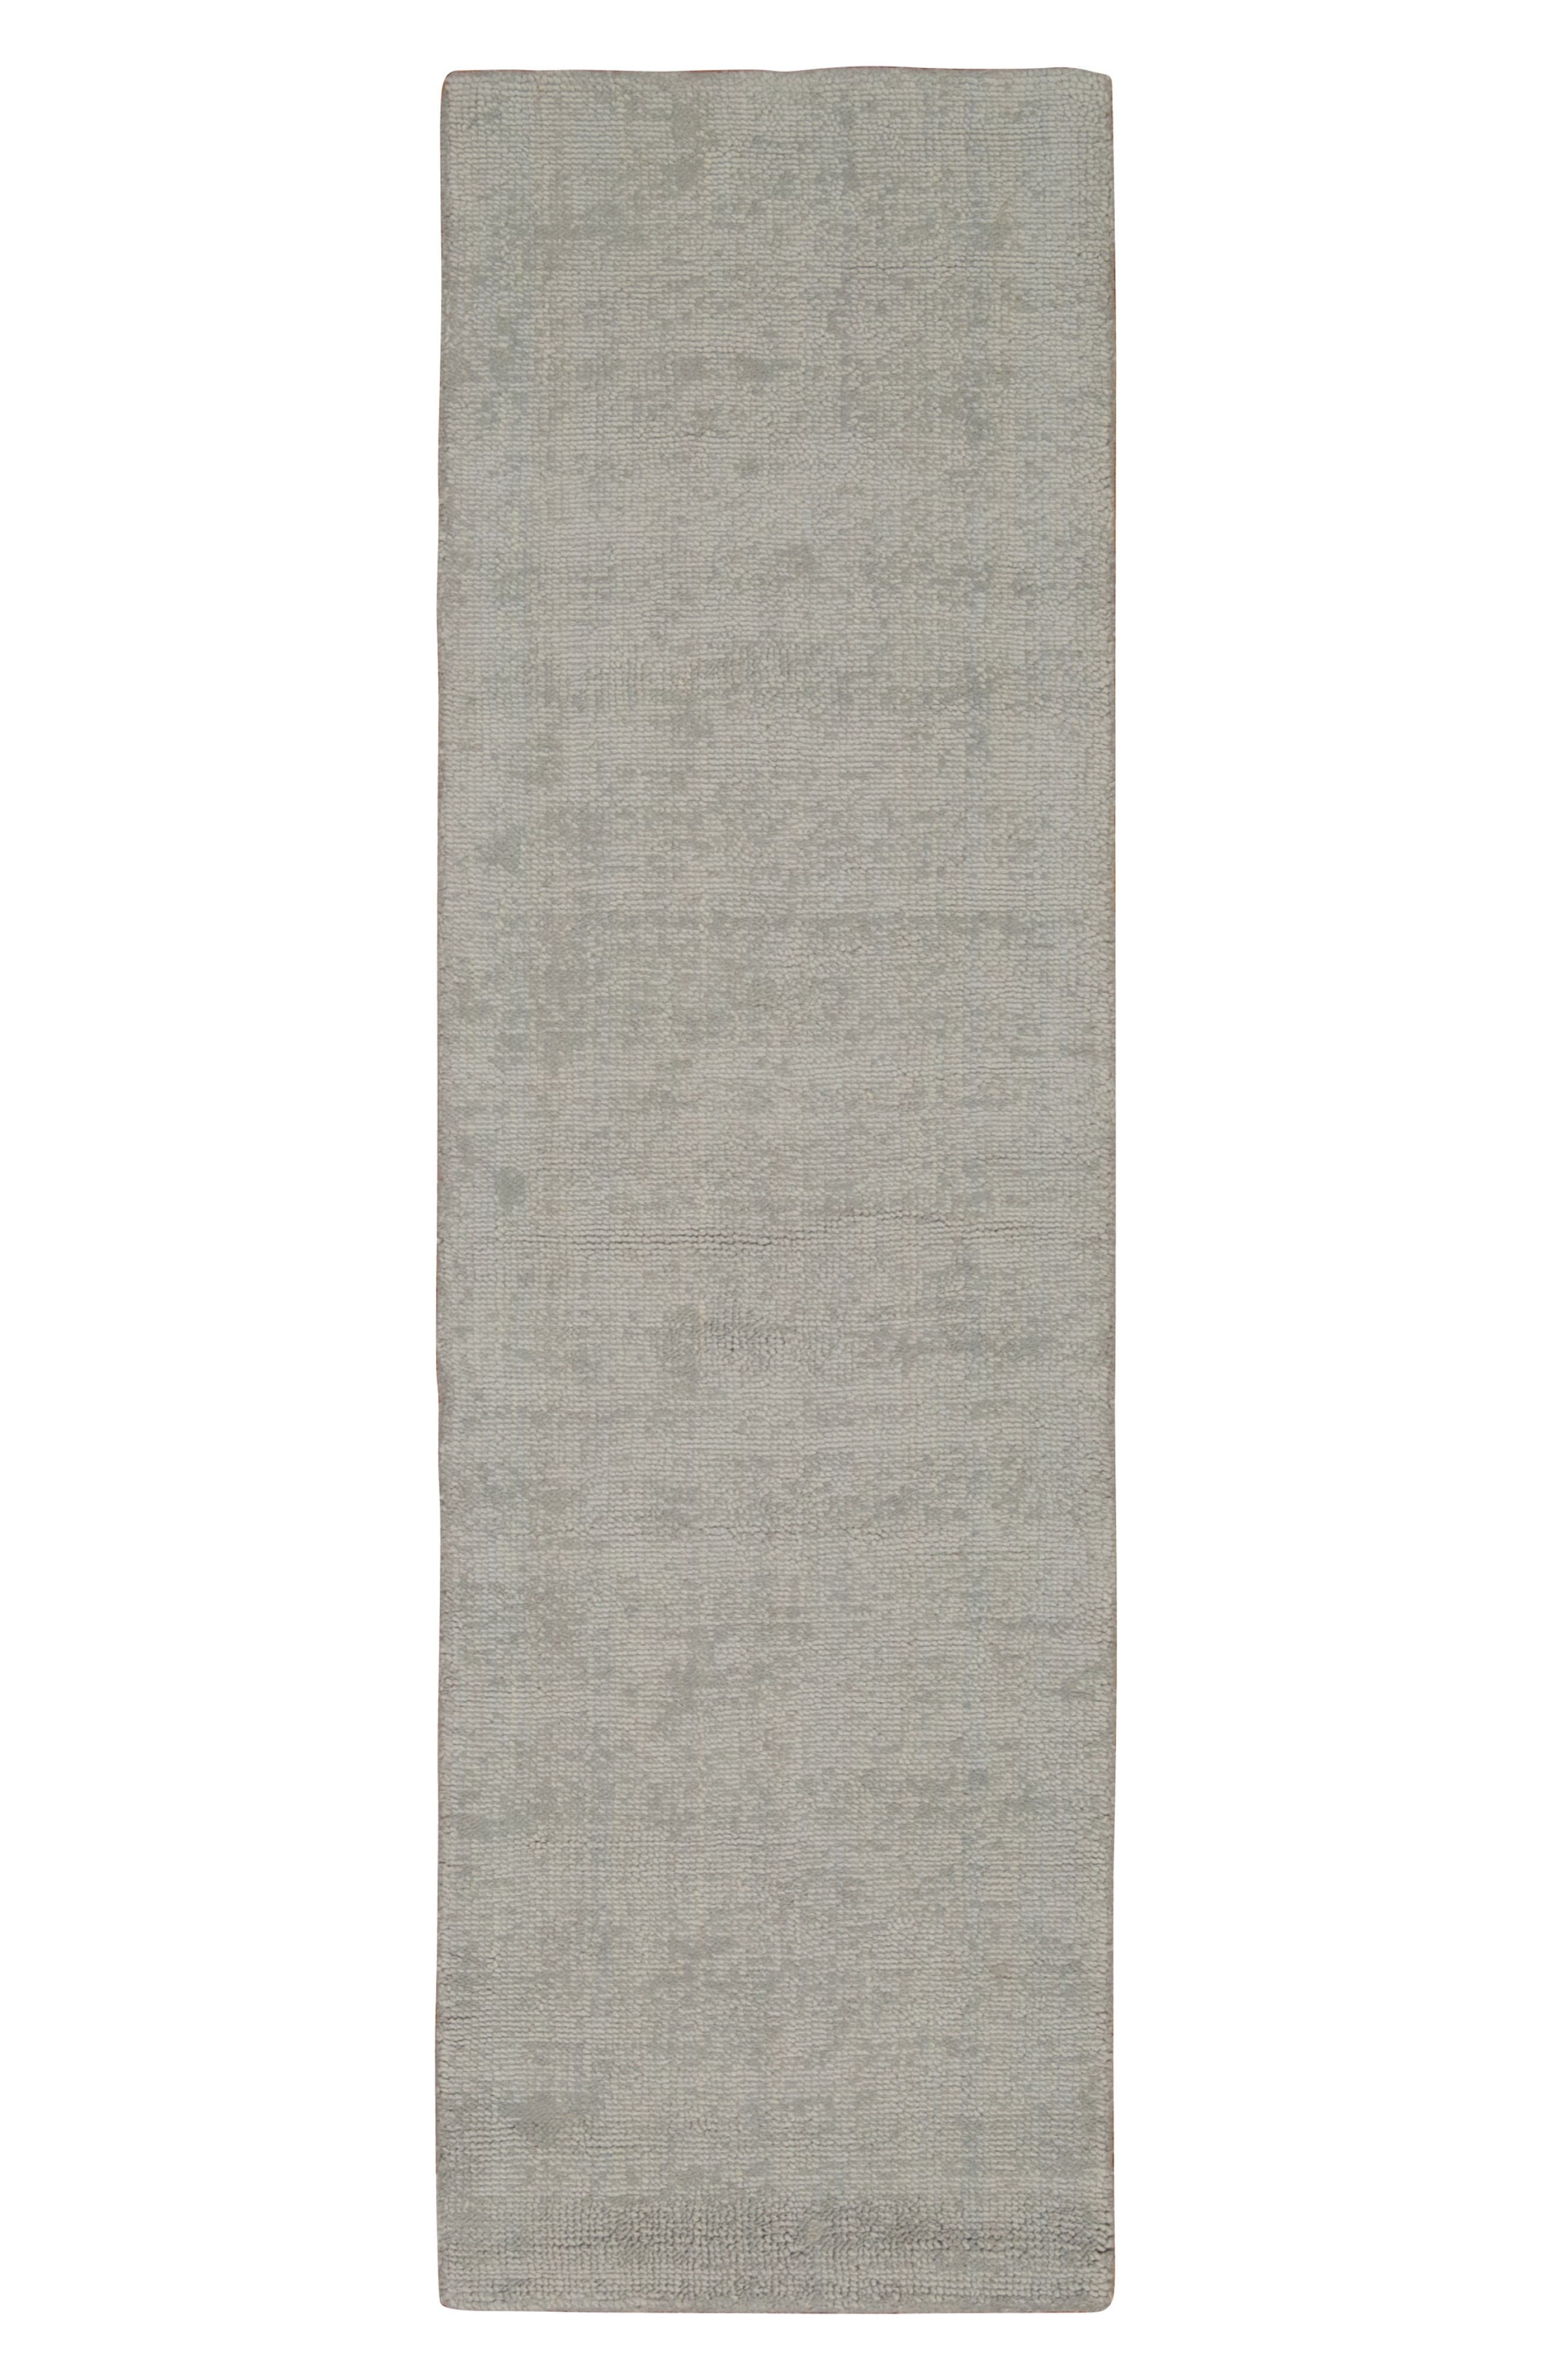 Nevada Valley Handwoven Area Rug,                             Alternate thumbnail 2, color,                             030